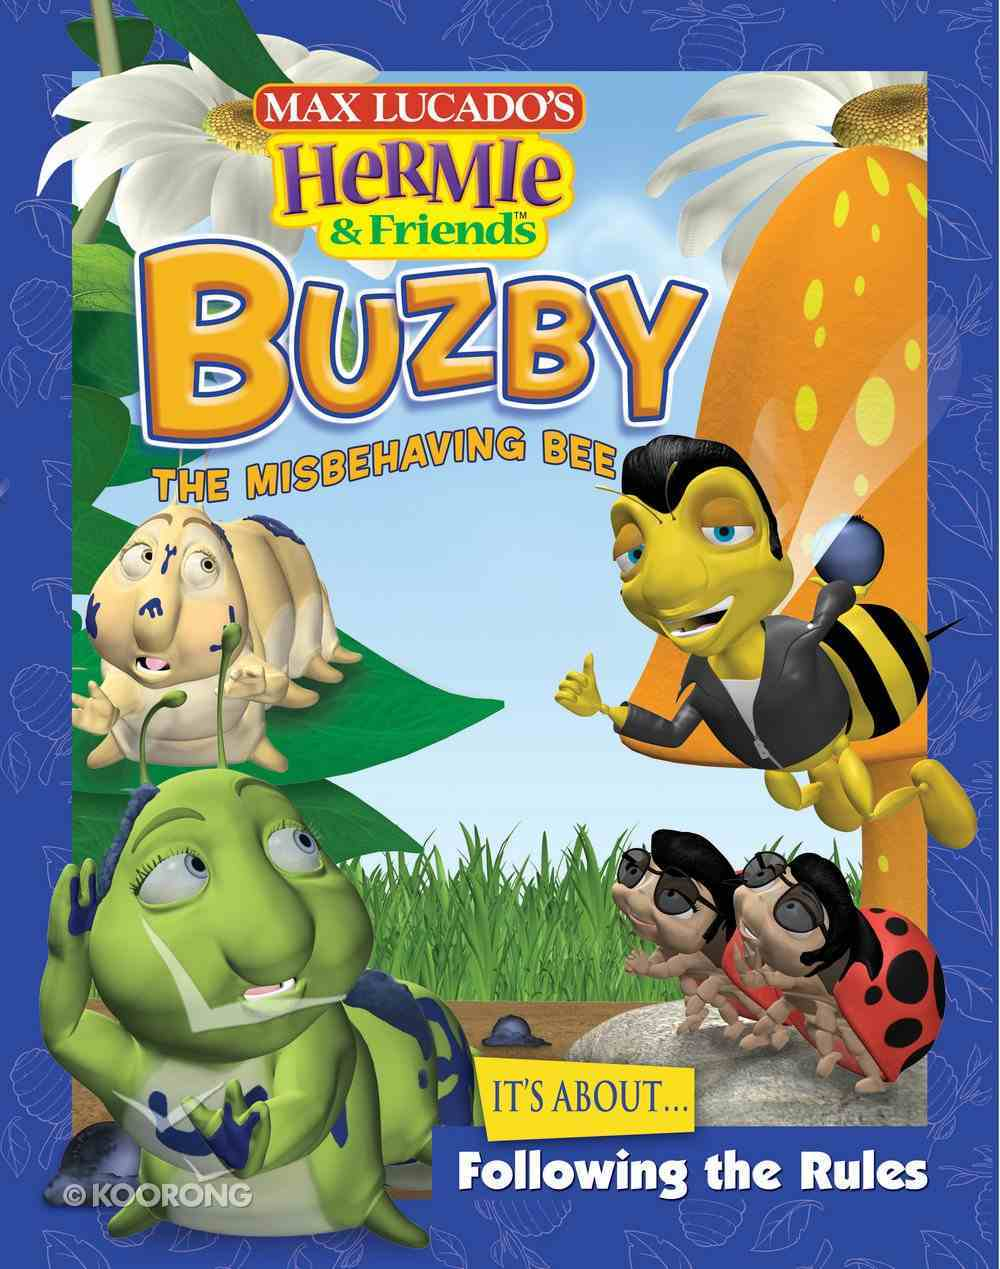 Buzby the Misbehaving Bee (Hermie And Friends Series) eBook